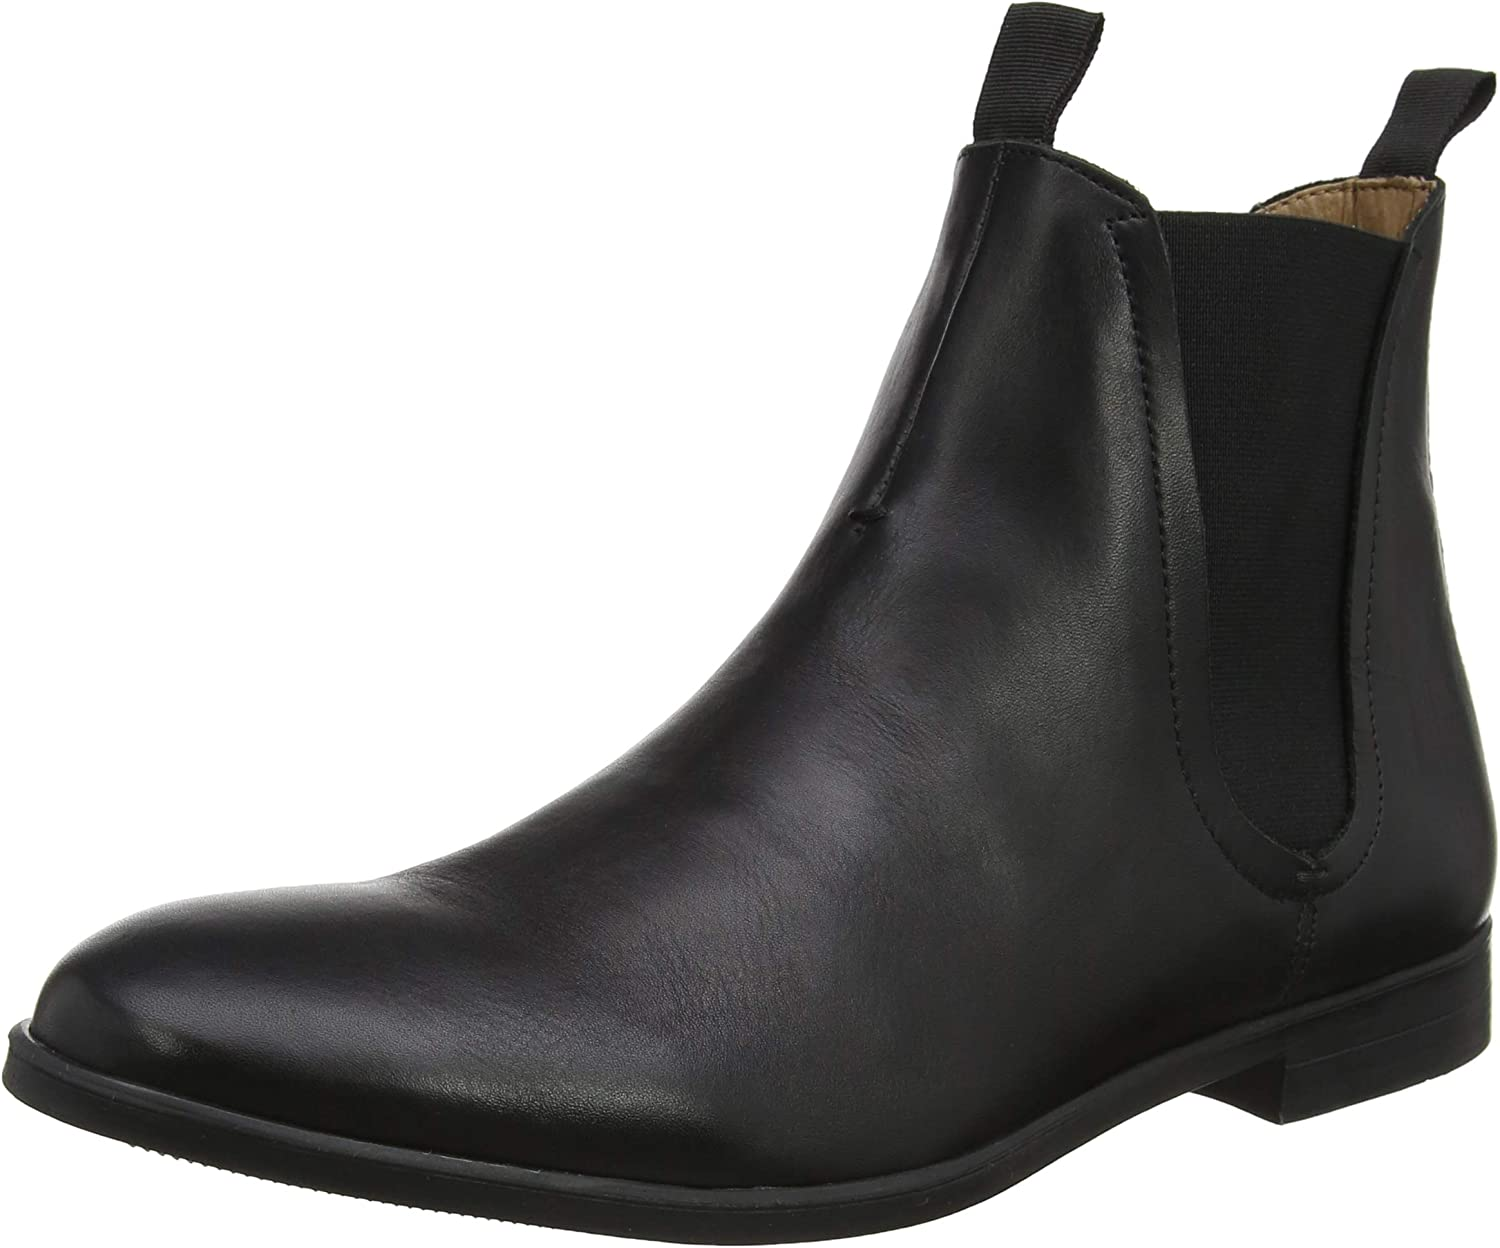 H By Hudson Mens Atherstone Leather Smart Work Office Ankle Chelsea Boot - Black - 11